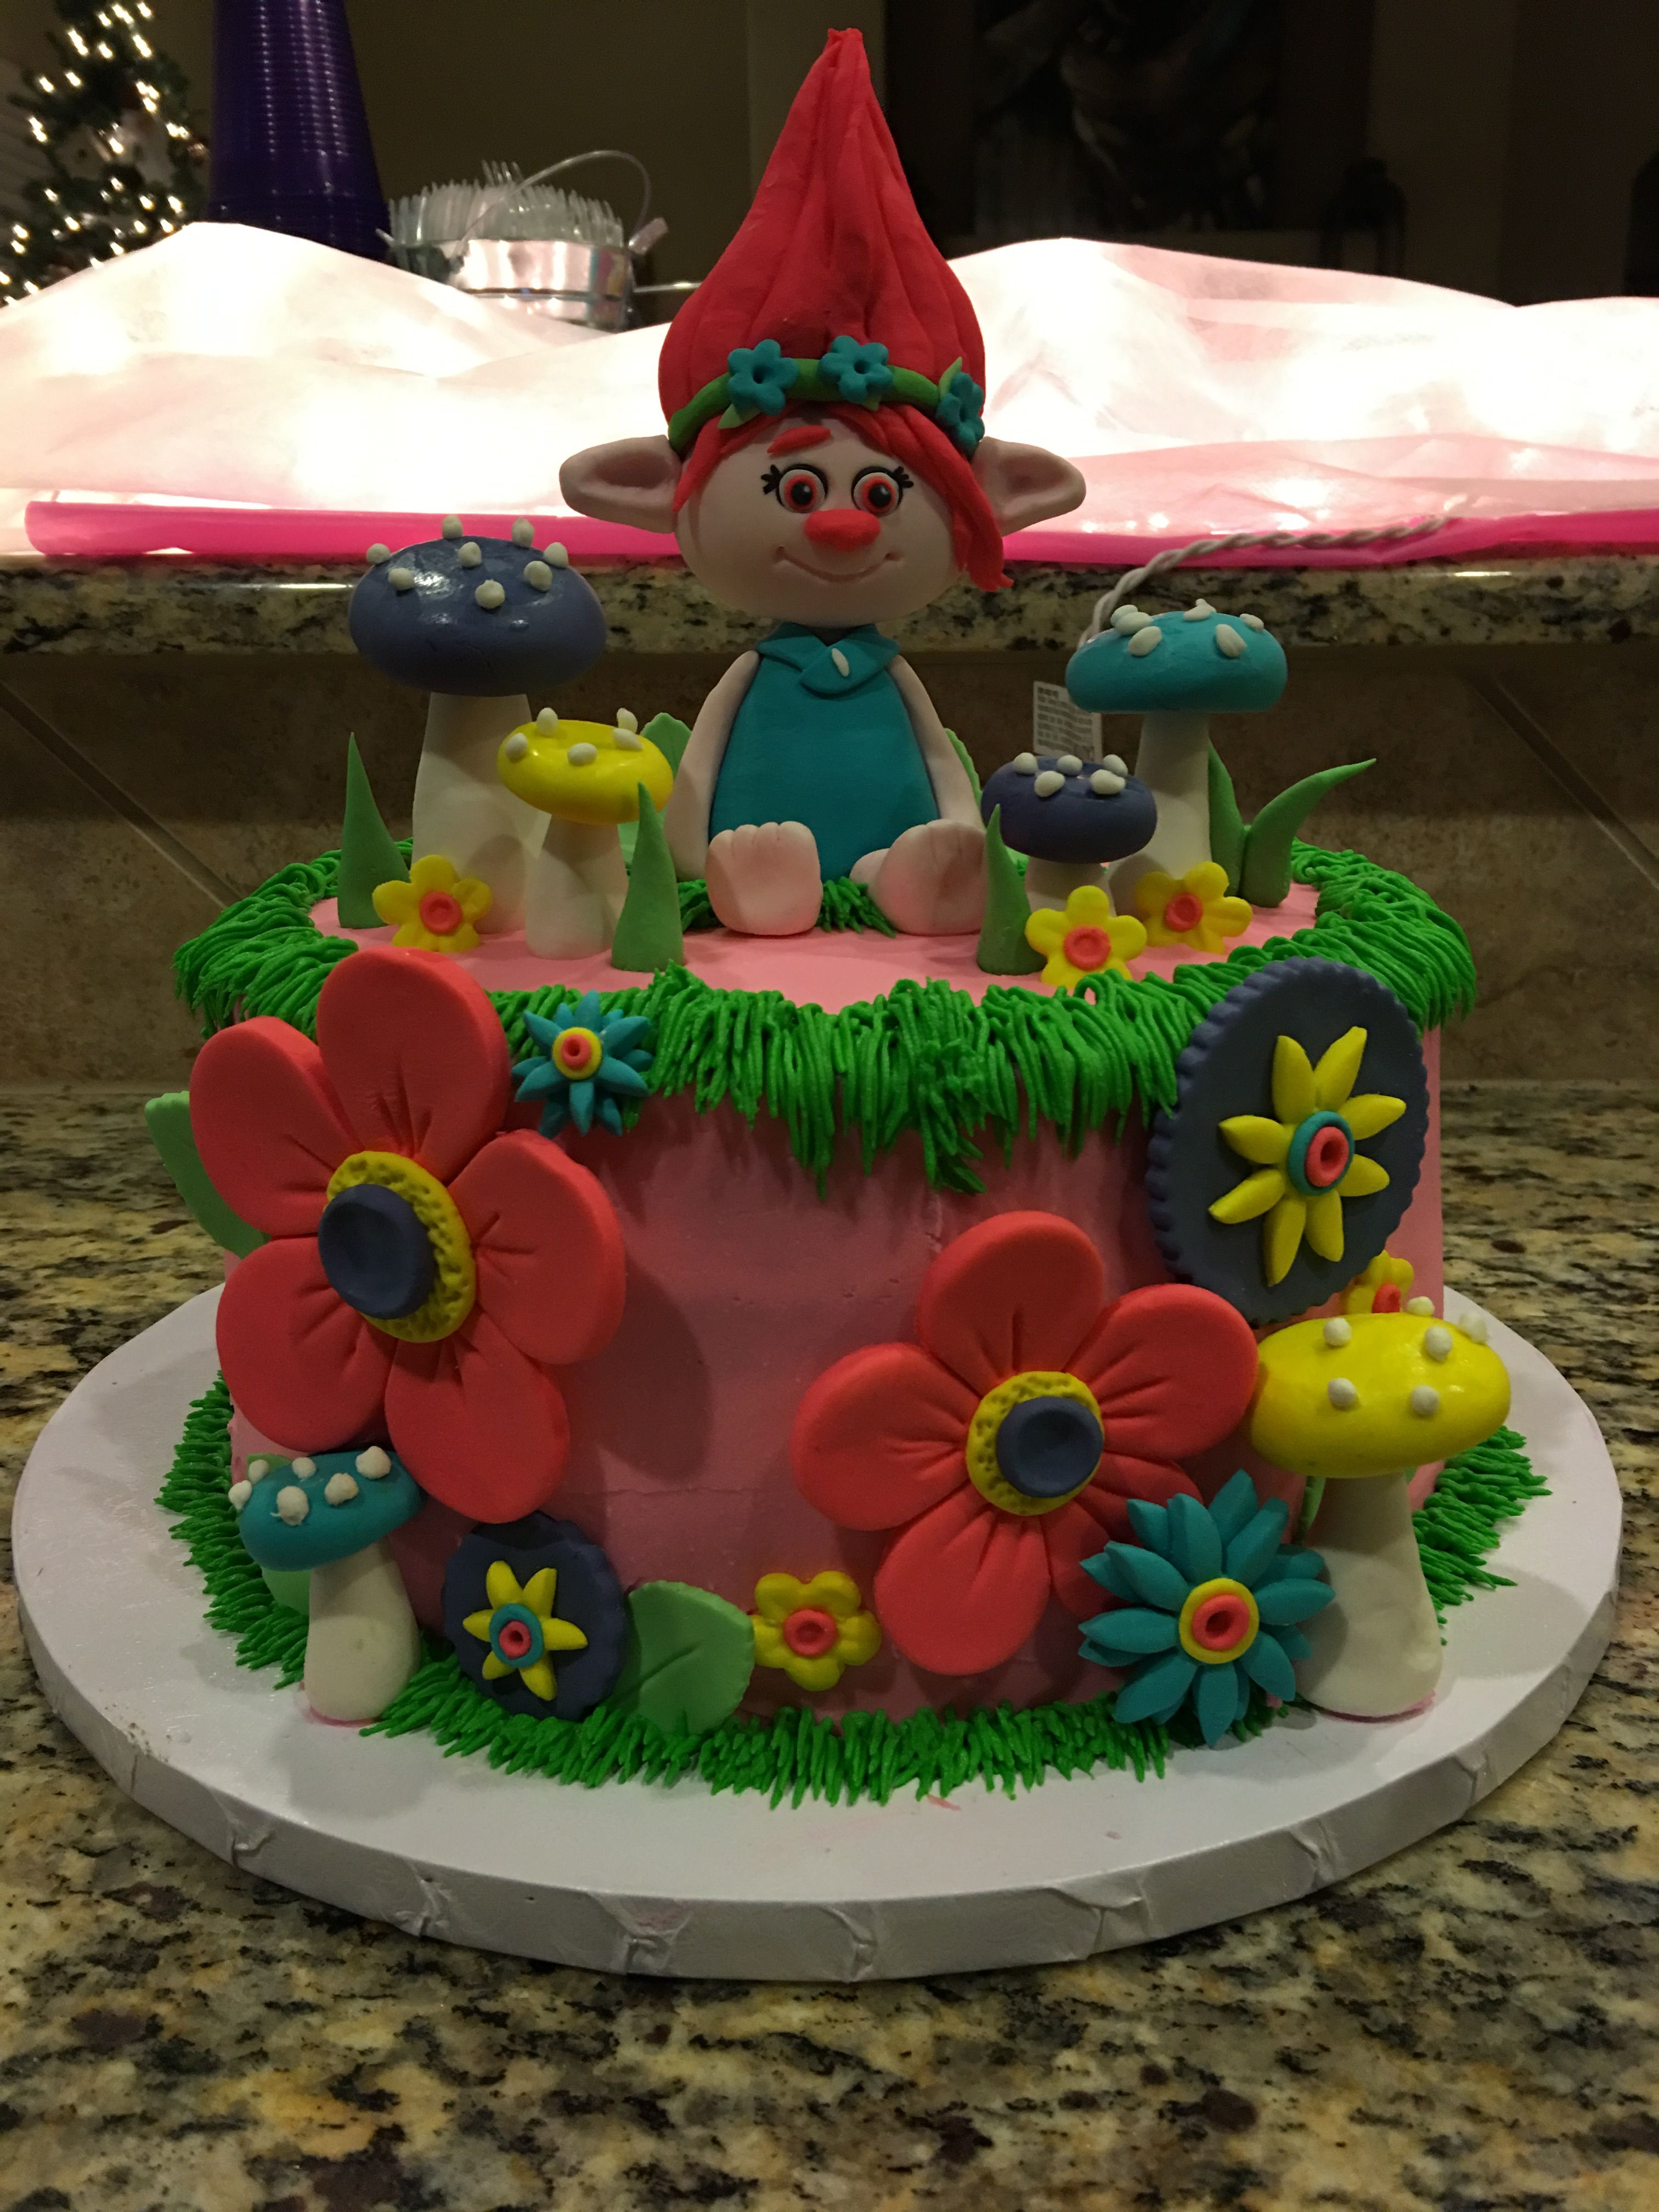 poppy troll cake by hive bakery troll birthday ideas pinterest geburtstag torte m dchen. Black Bedroom Furniture Sets. Home Design Ideas